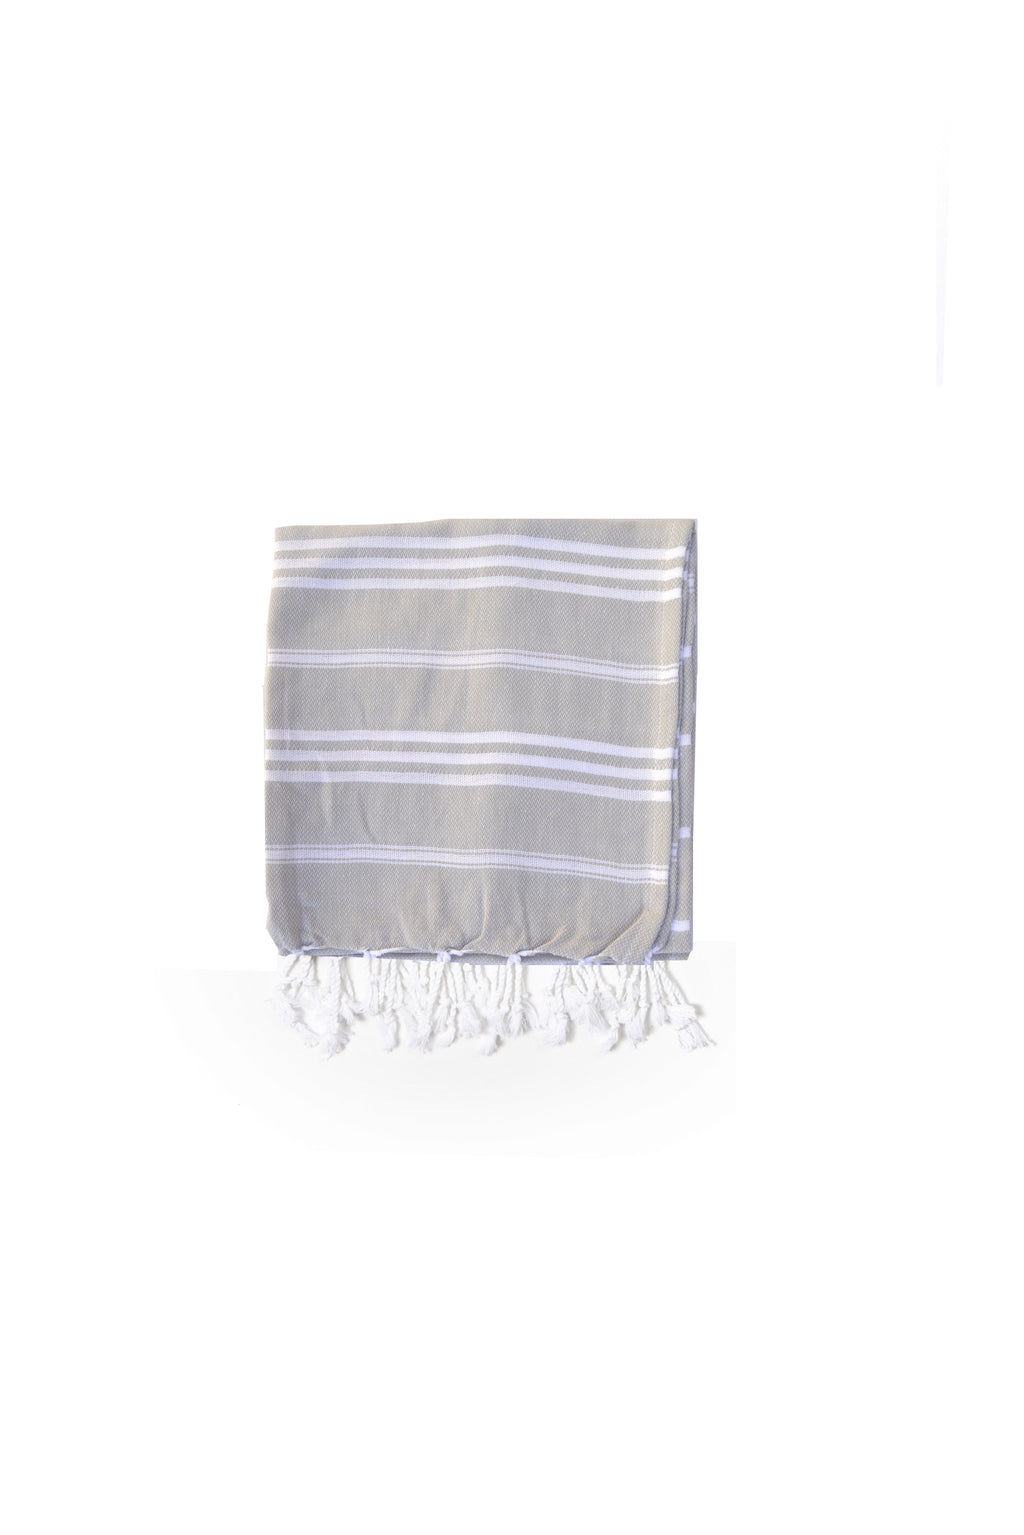 Grey Hammam Hand Towel